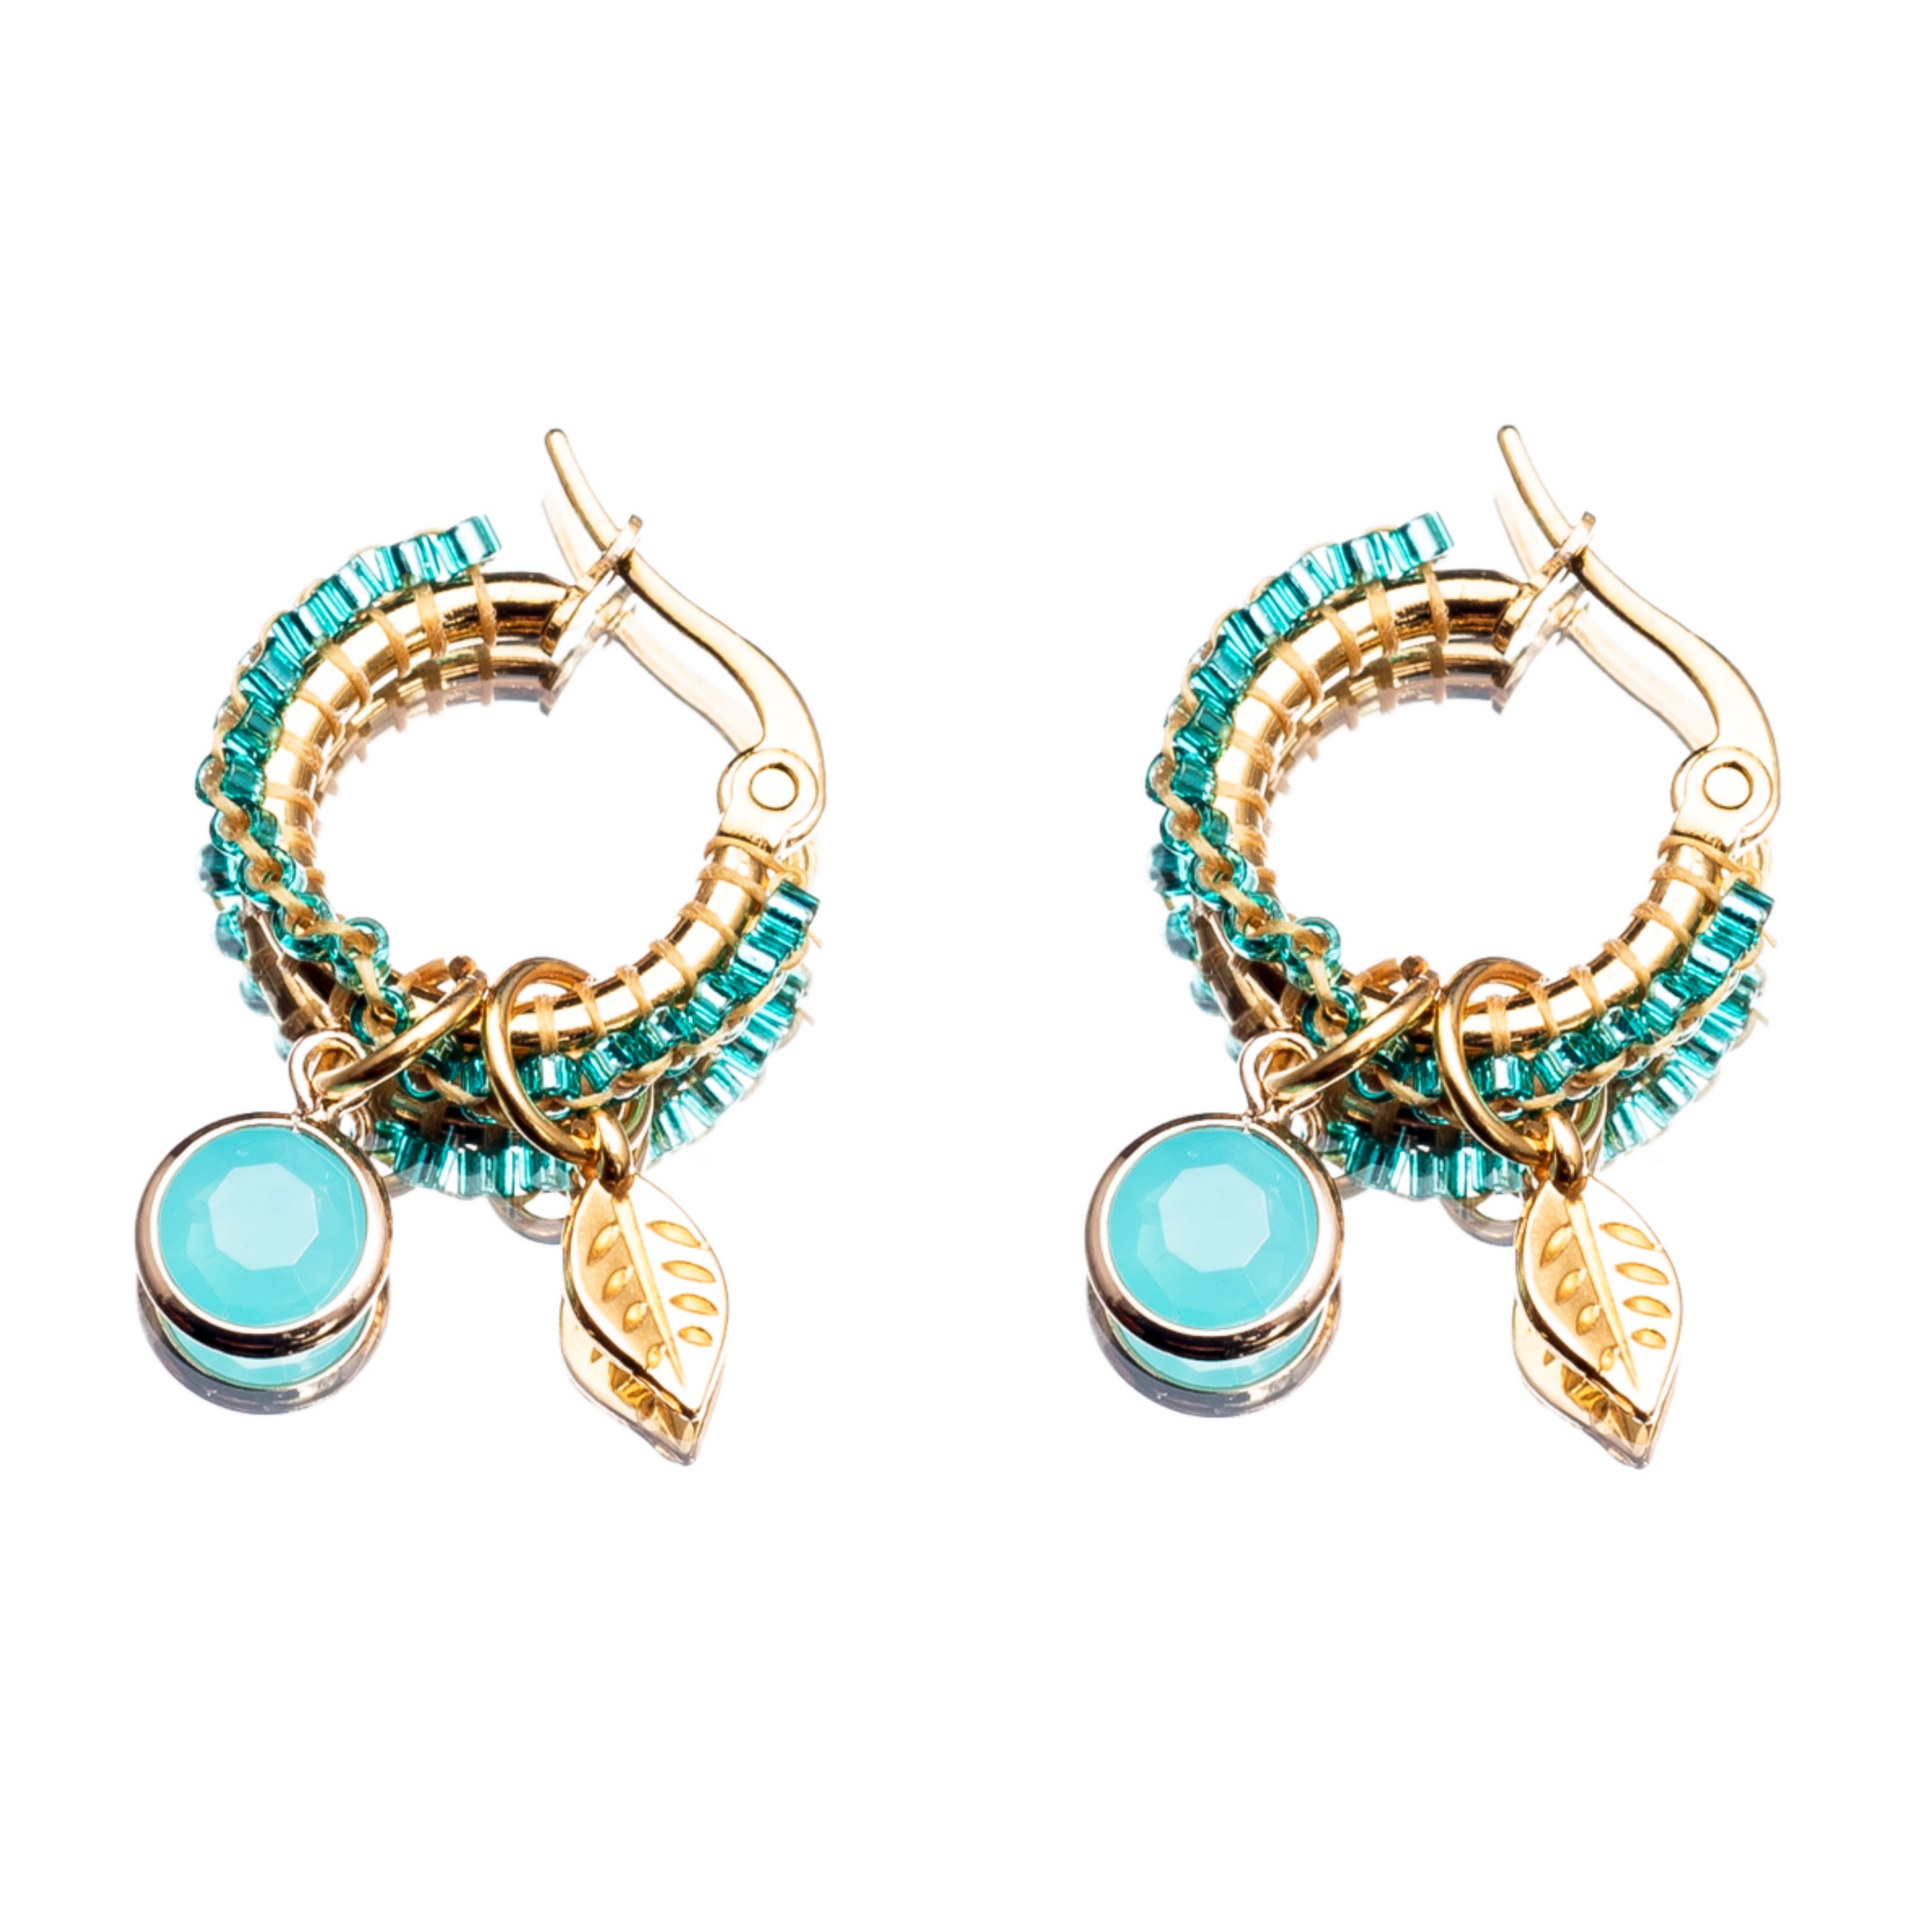 Melz - Earring Emma Turquoise